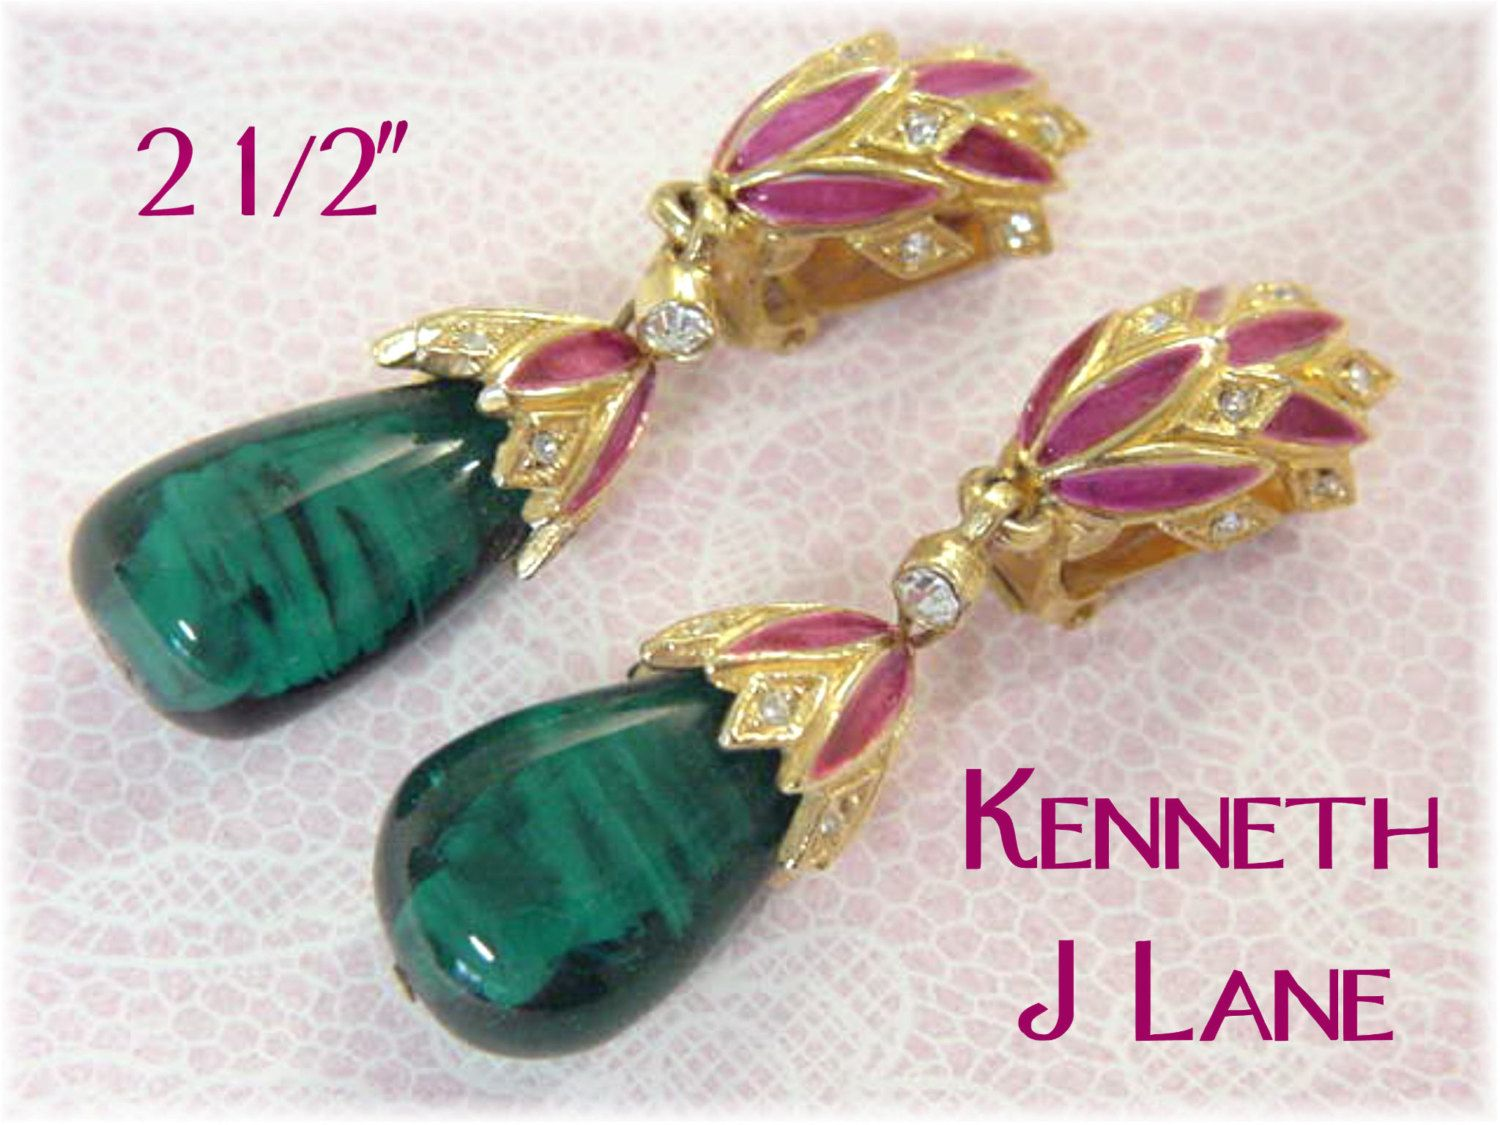 Kenneth Jay Lane K J L - Pink Lotus Flower Rhinestone Art Glass Earrings - Statement Jewellery Victorian - Chandelier Dangle - FREE SHIPPING